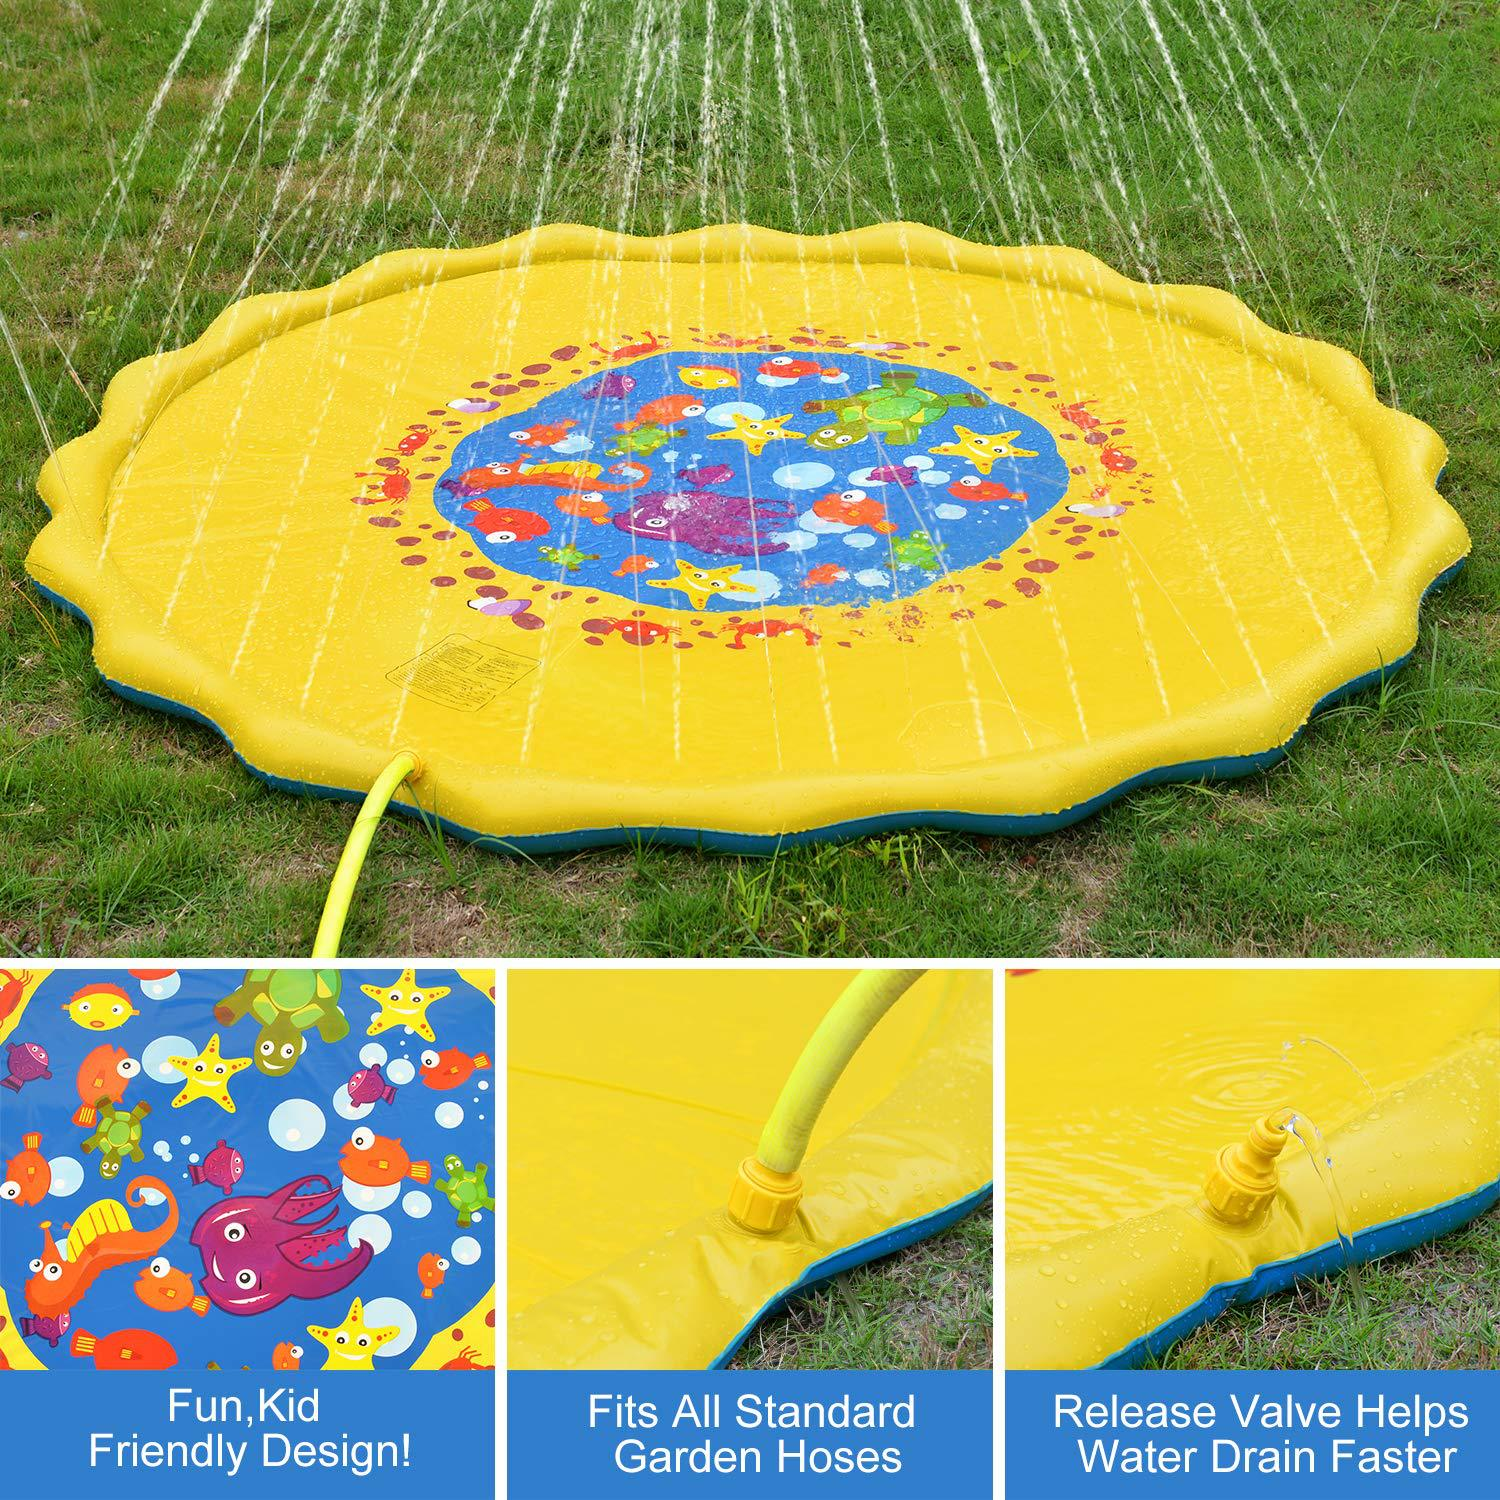 FreeShipping-Inflatable Splash Pad Sprinkler for Kids - cnsunbeauty